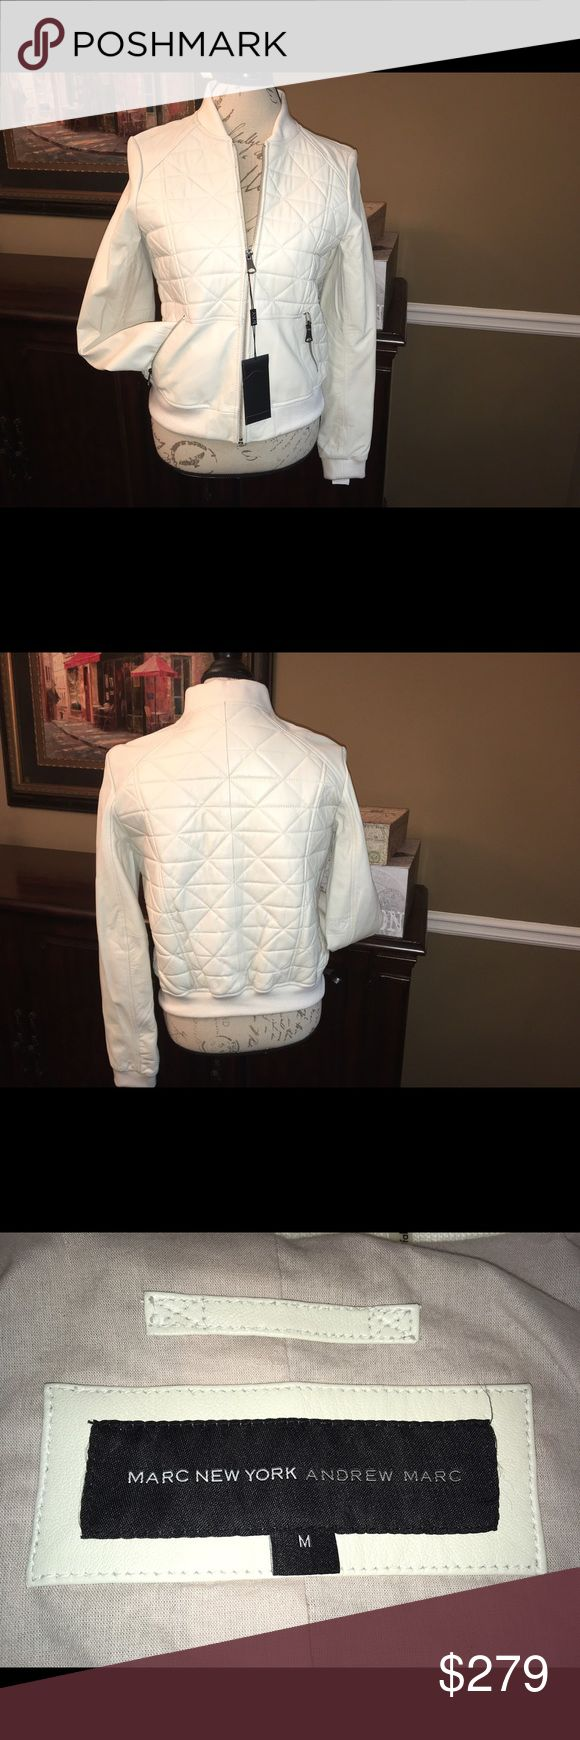 ✅Sale!✅ Marc NY Andrew Marc Leather Jacket, Medium Marc New York Andrew Marc White Leather Jacket, Medium (on sale through the weekend)  Brand new with tags!! ☺️ This is stunning white quilted leather and would be perfect with a cute pair of jeans or a skirt. Measures 23 inches from shoulder to hem. Andrew Marc Jackets & Coats